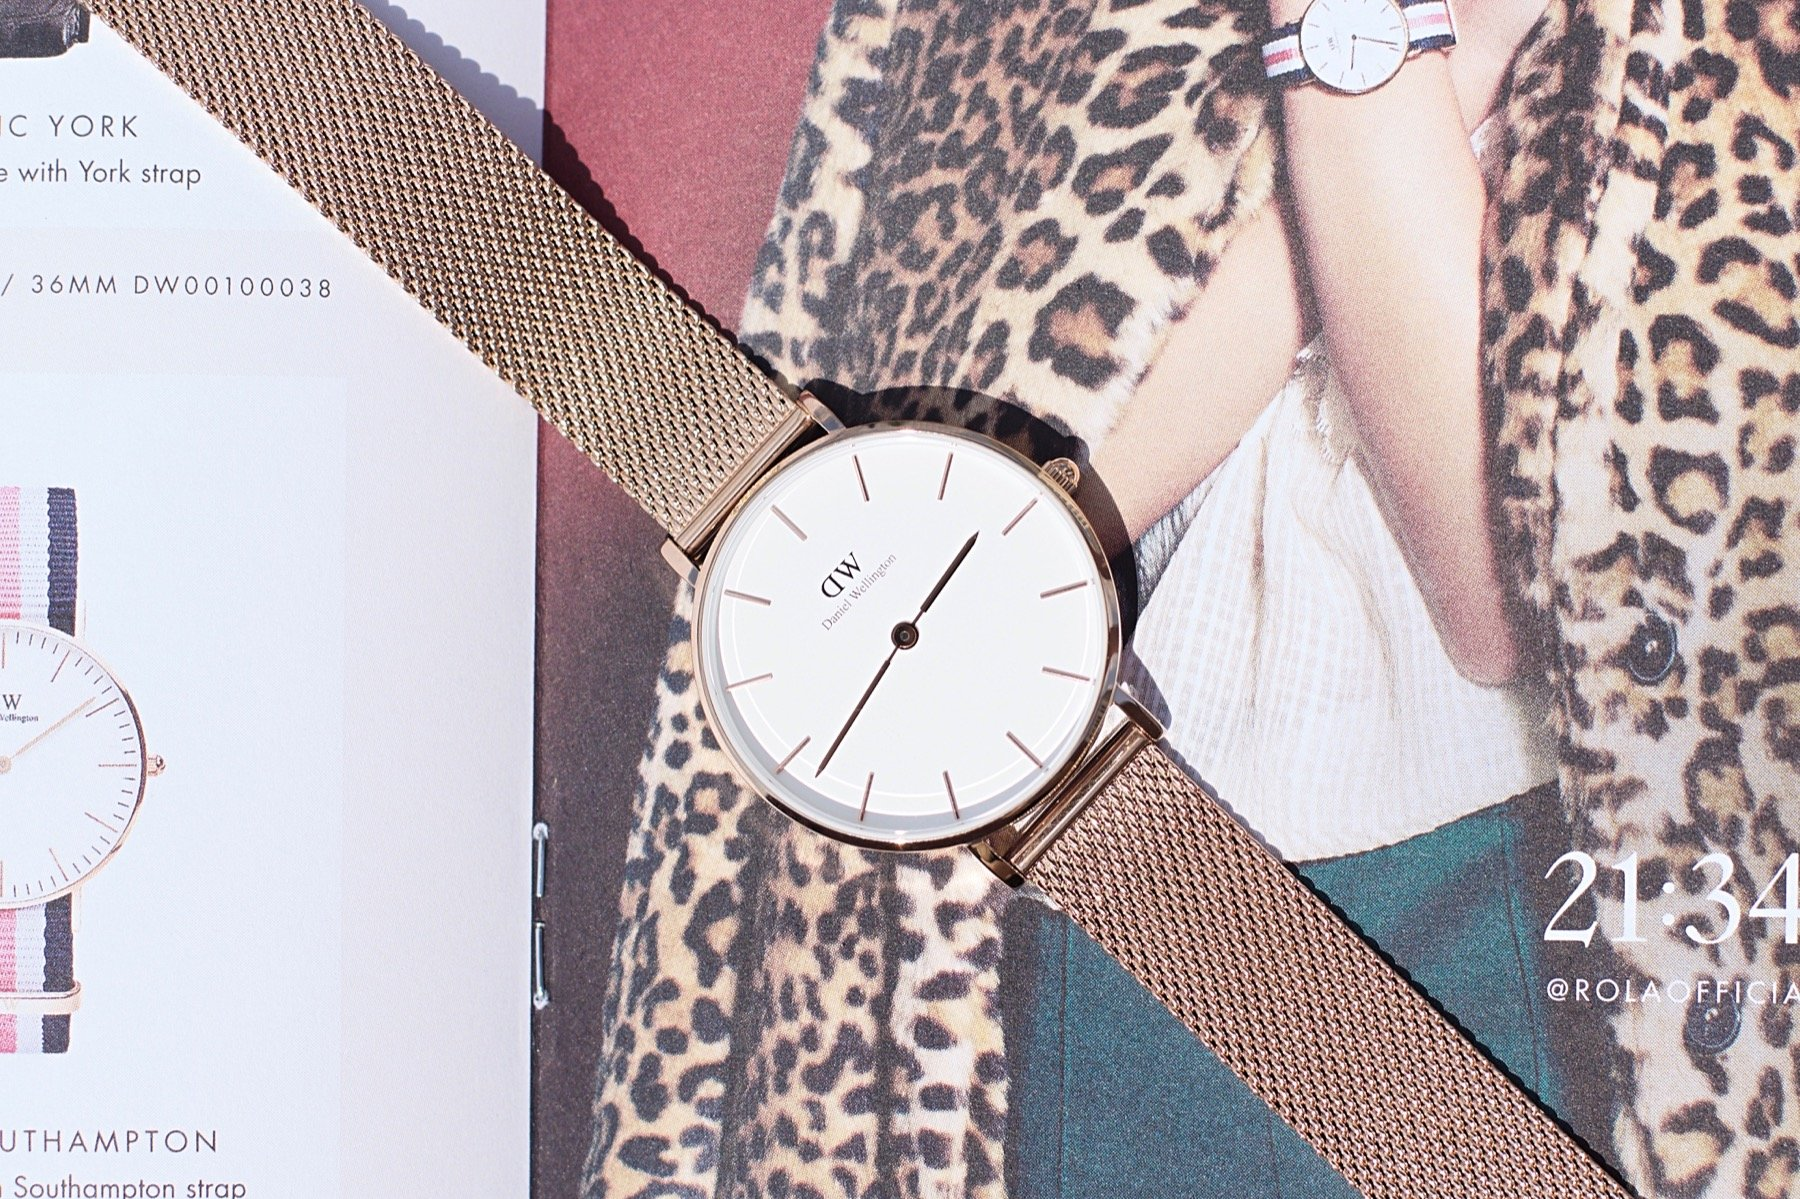 jenna minnie jennaminnie fashion blogger daniel wellington watch